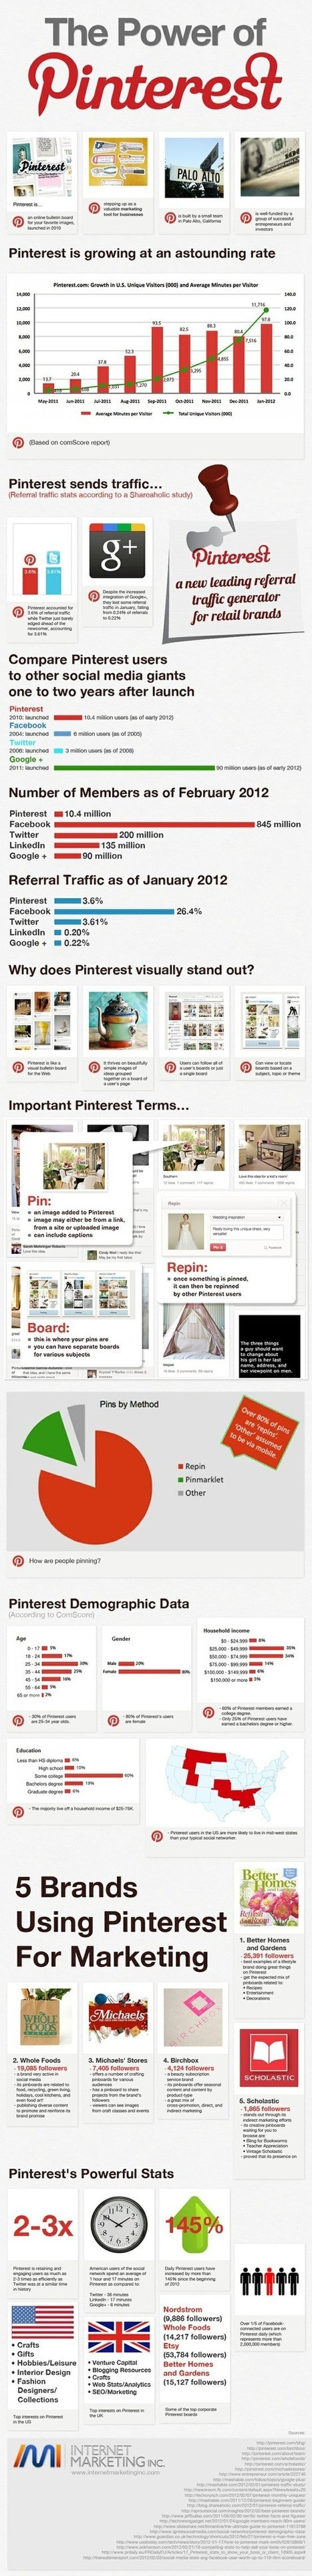 #Pinterest: YUP You Should Be On There[Infographic] | Curation with Scoop.it, Pinterest, & Social Media | Scoop.it